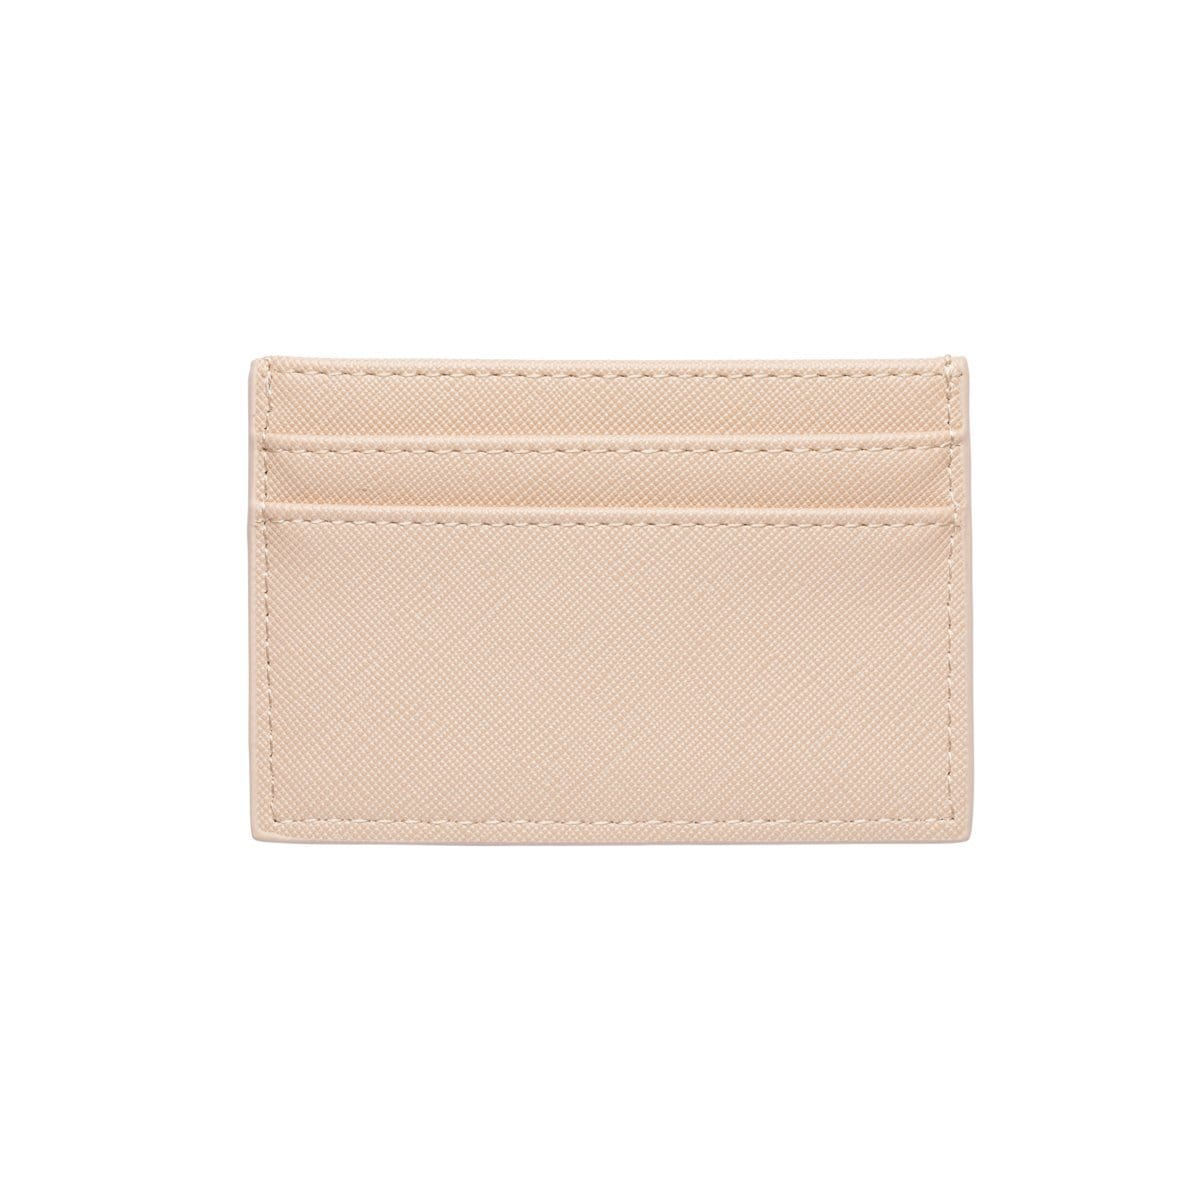 Sand Nude Clea Card Holder